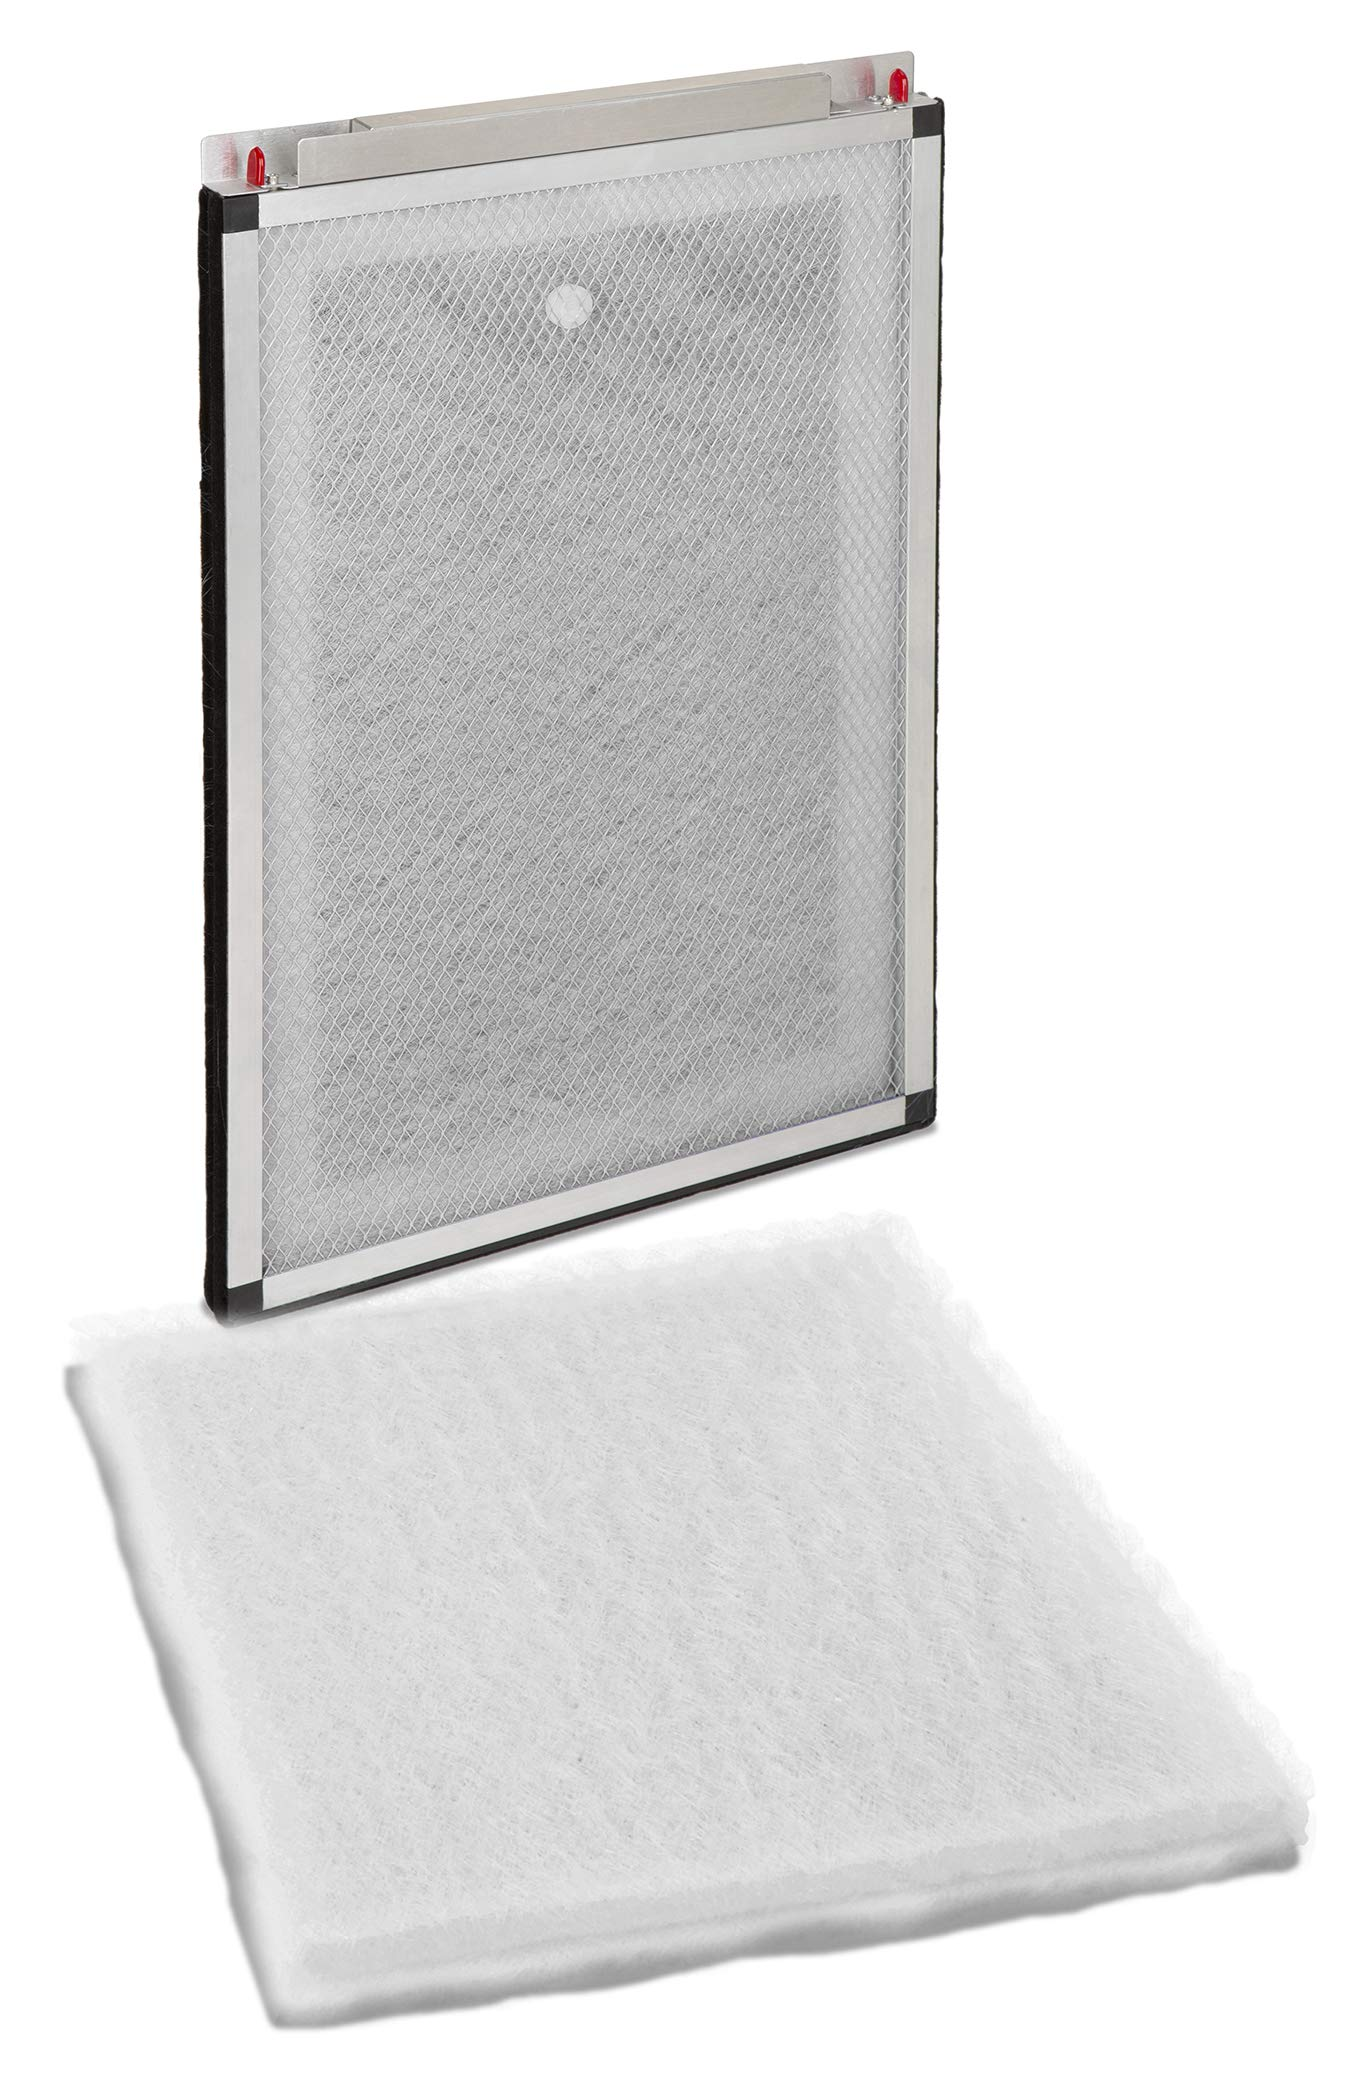 20 x 30 x 1 - Natures Home Micro Power Guard Air Cleaner Replacement Compatible Filter Pads, (3) Pack White by Dynamic-Sales-HVAC com (Image #1)